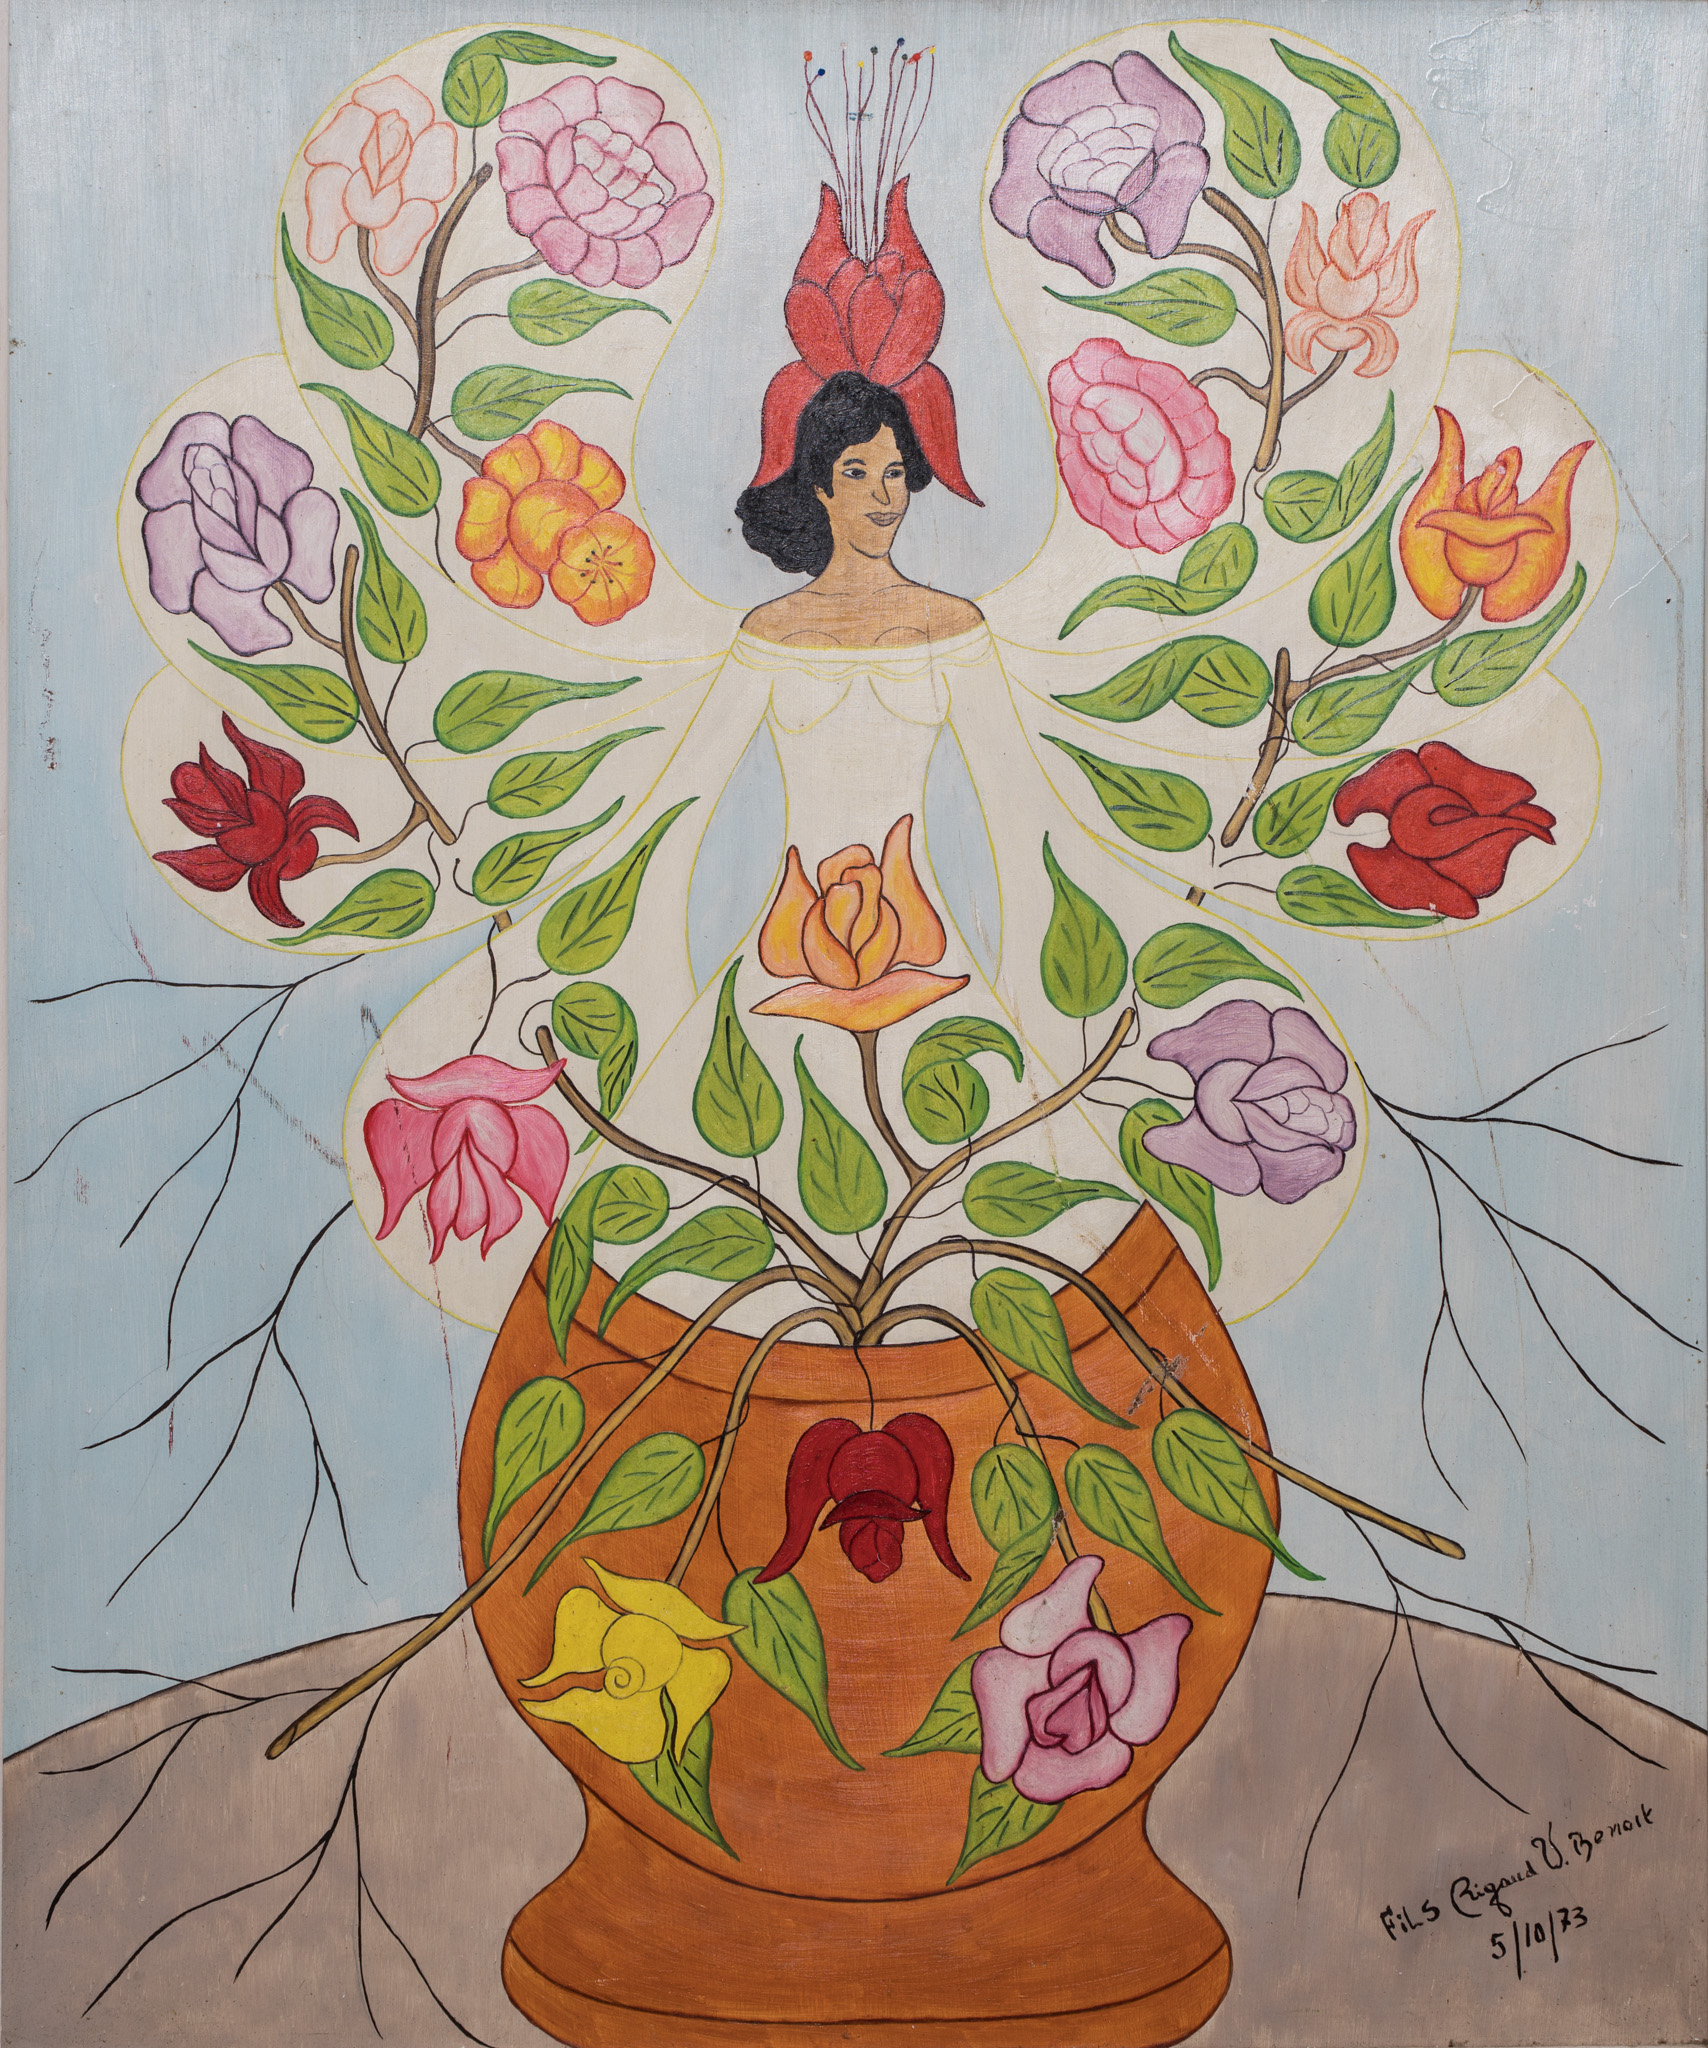 Woman in vase with flowers, 1973.